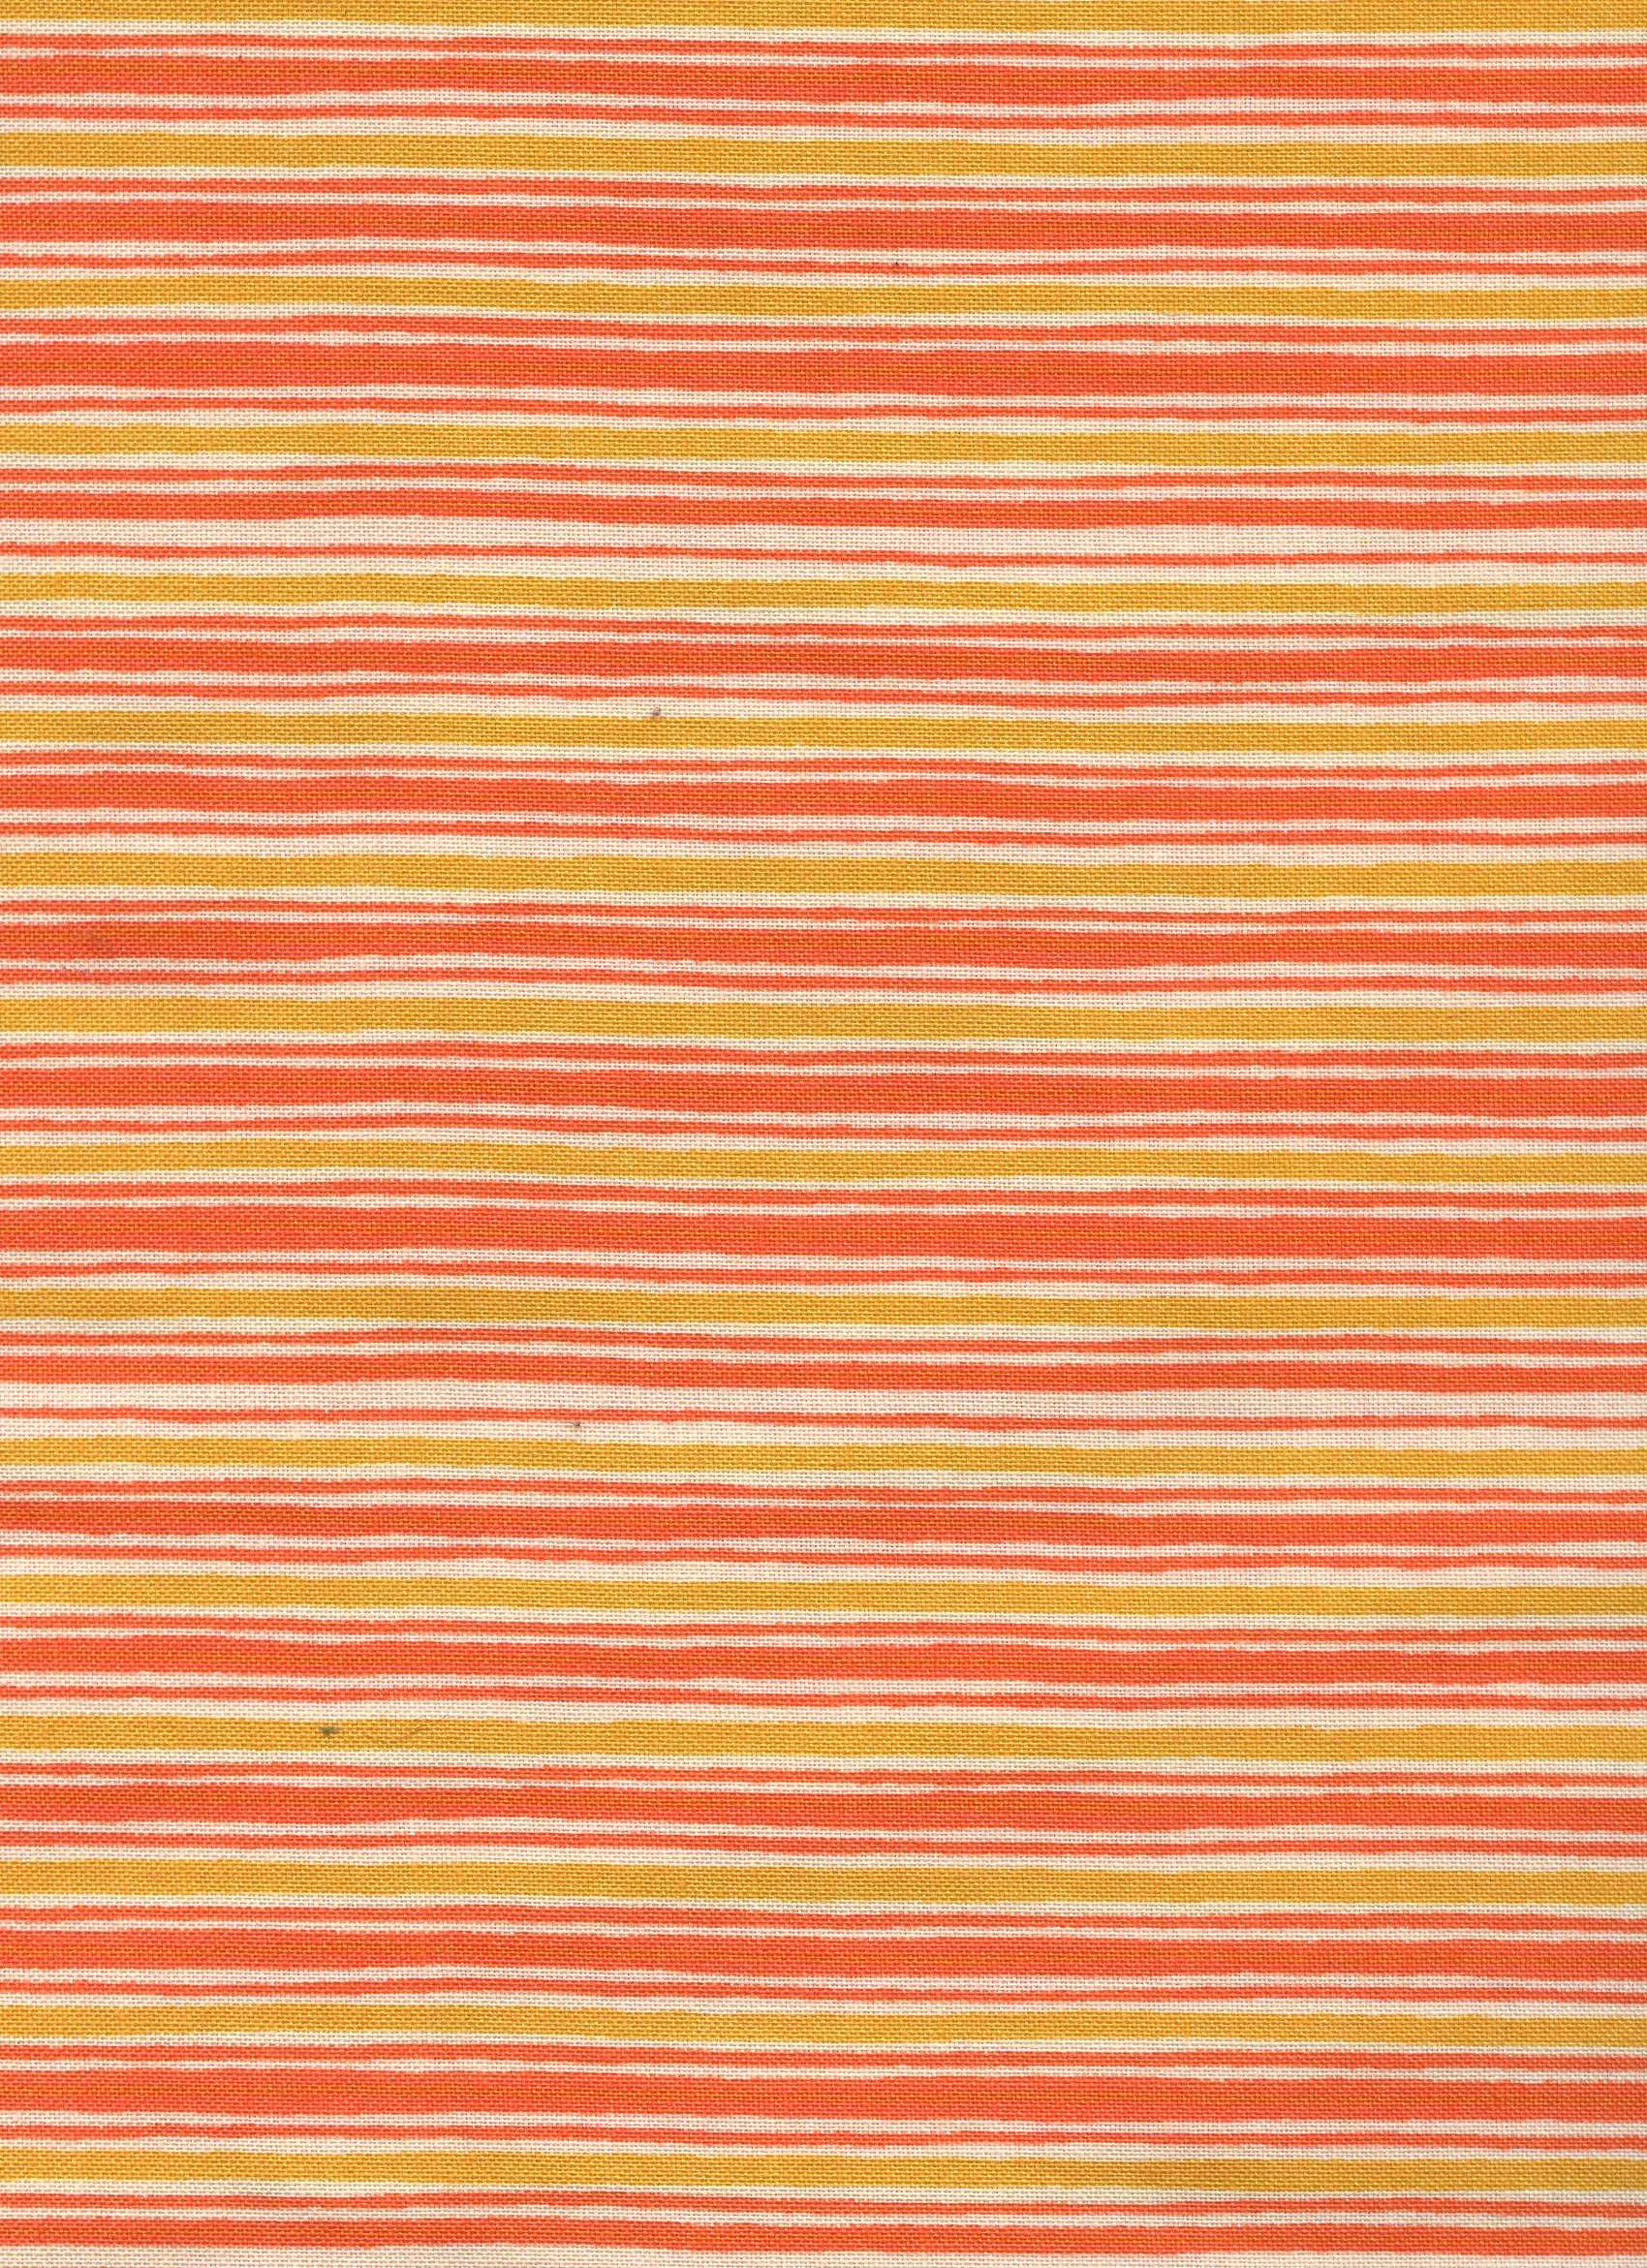 Orange and Yellow Stripe